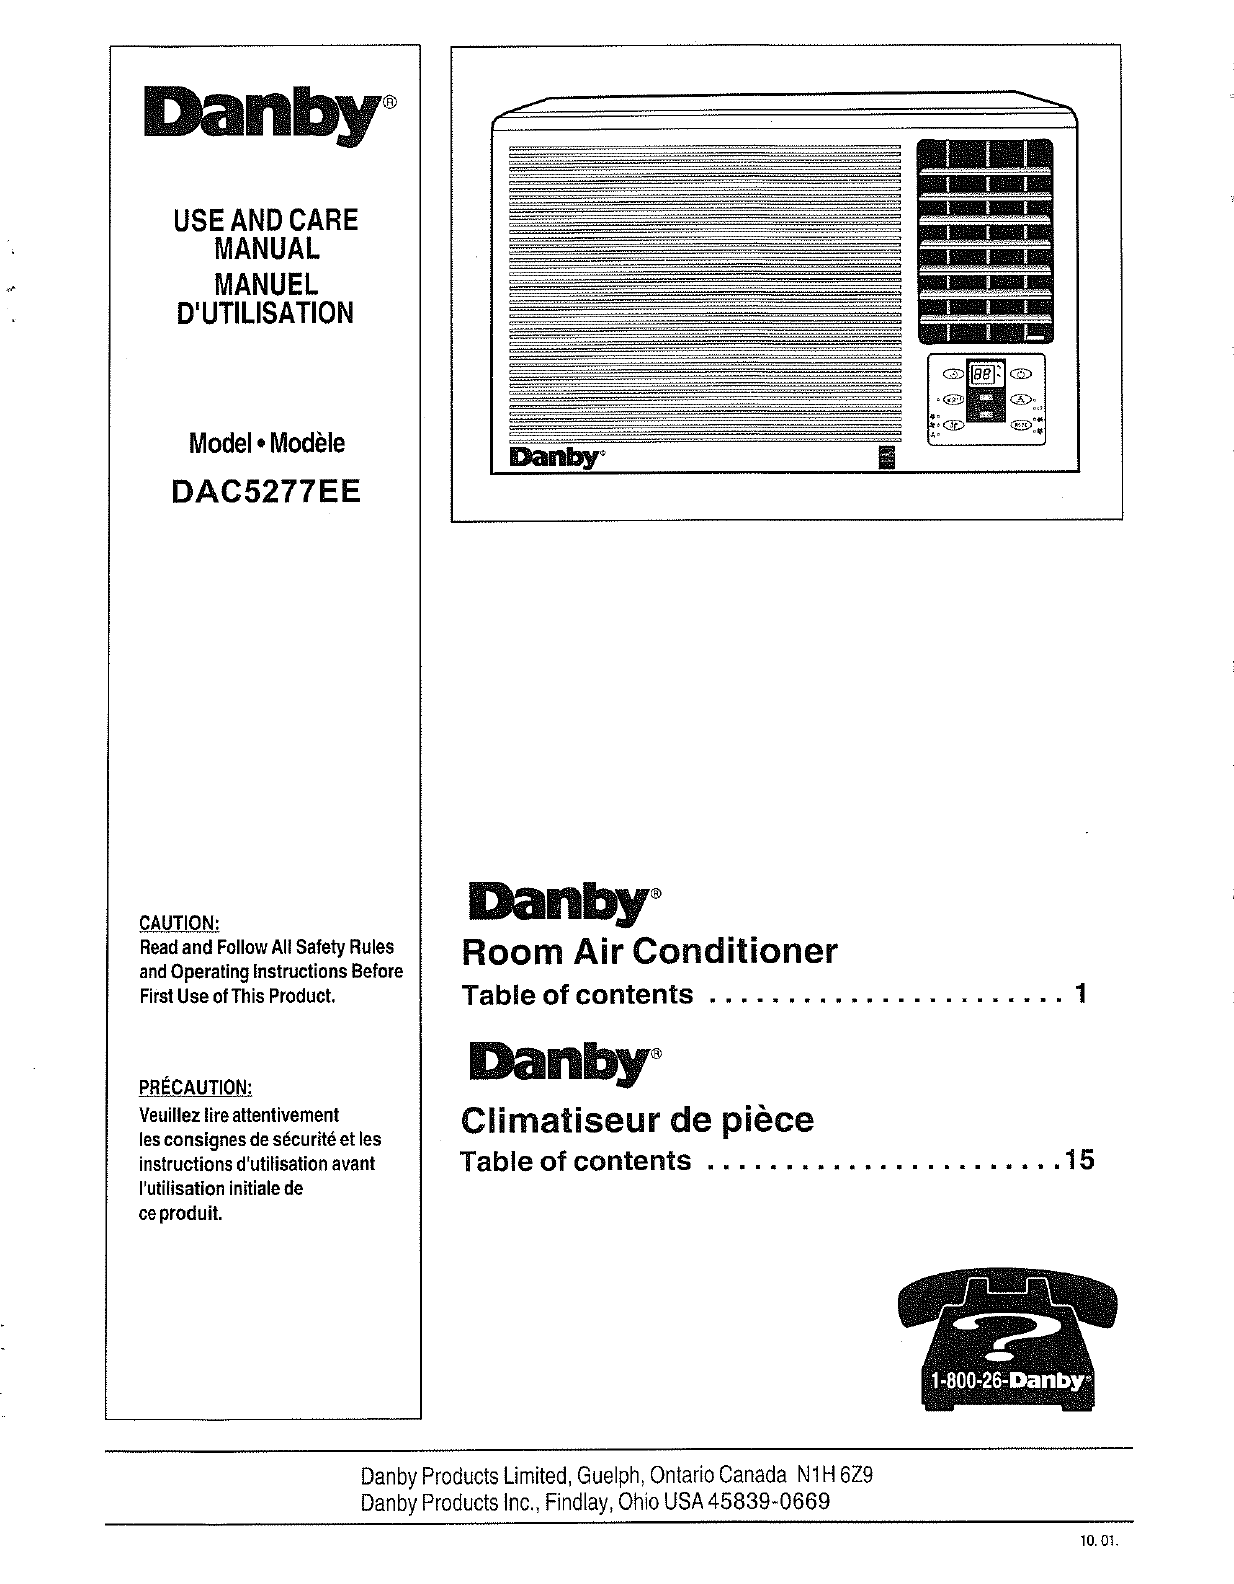 danby air conditioner manual dac5277ee open source user manual u2022 rh dramatic varieties com danby air conditioner instruction manual danby designer air conditioner user manual